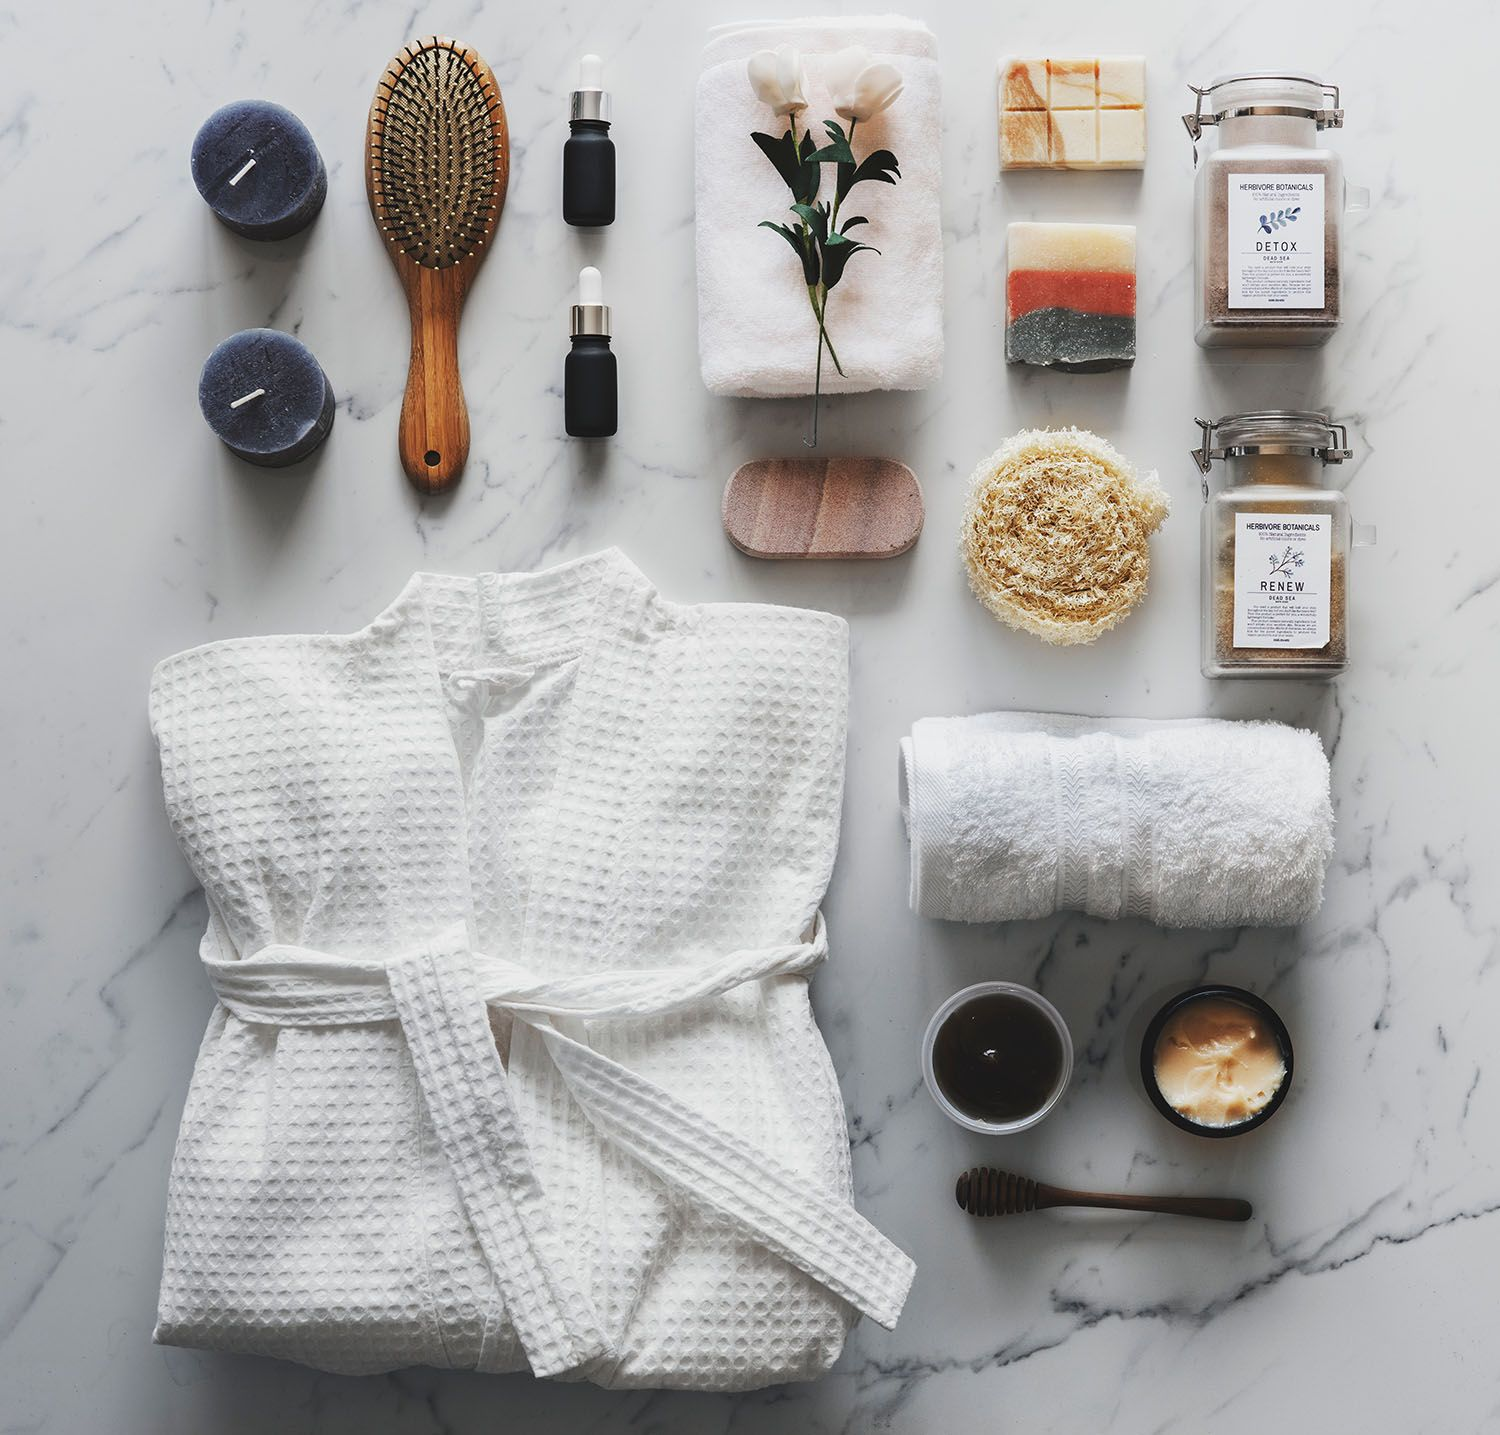 How to Give Yourself a Spa Day at Home